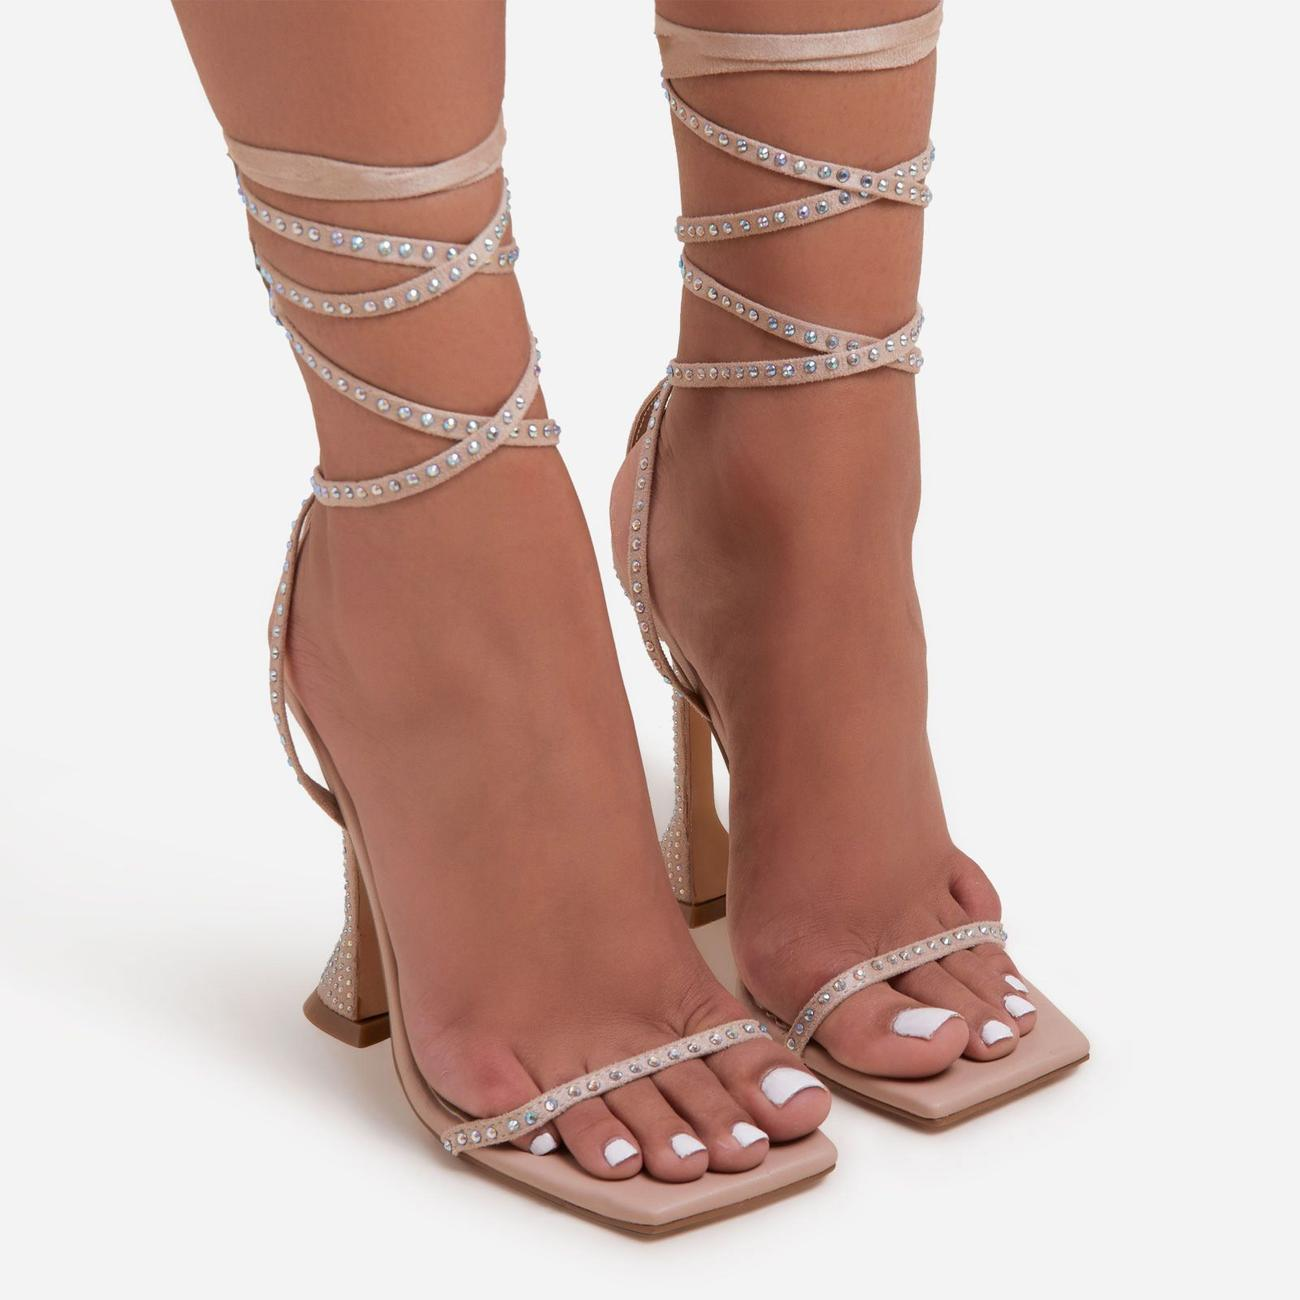 Yaya Diamante Detail Lace Up Square Toe Pyramid Heel In Nude Faux Leather Image 3